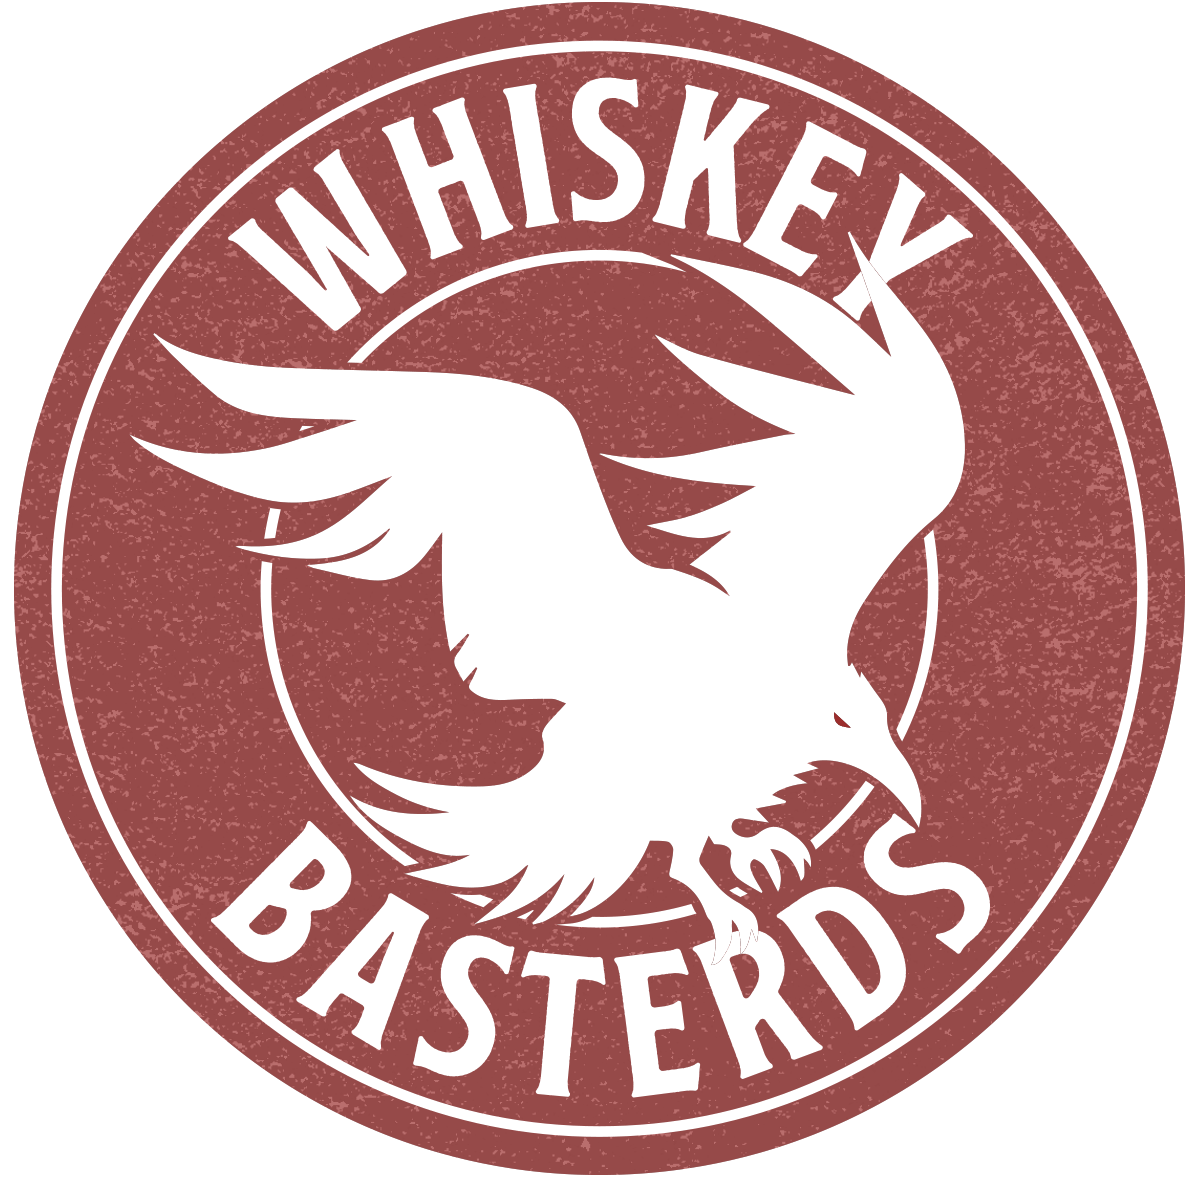 Whiskey Basterds Official Website